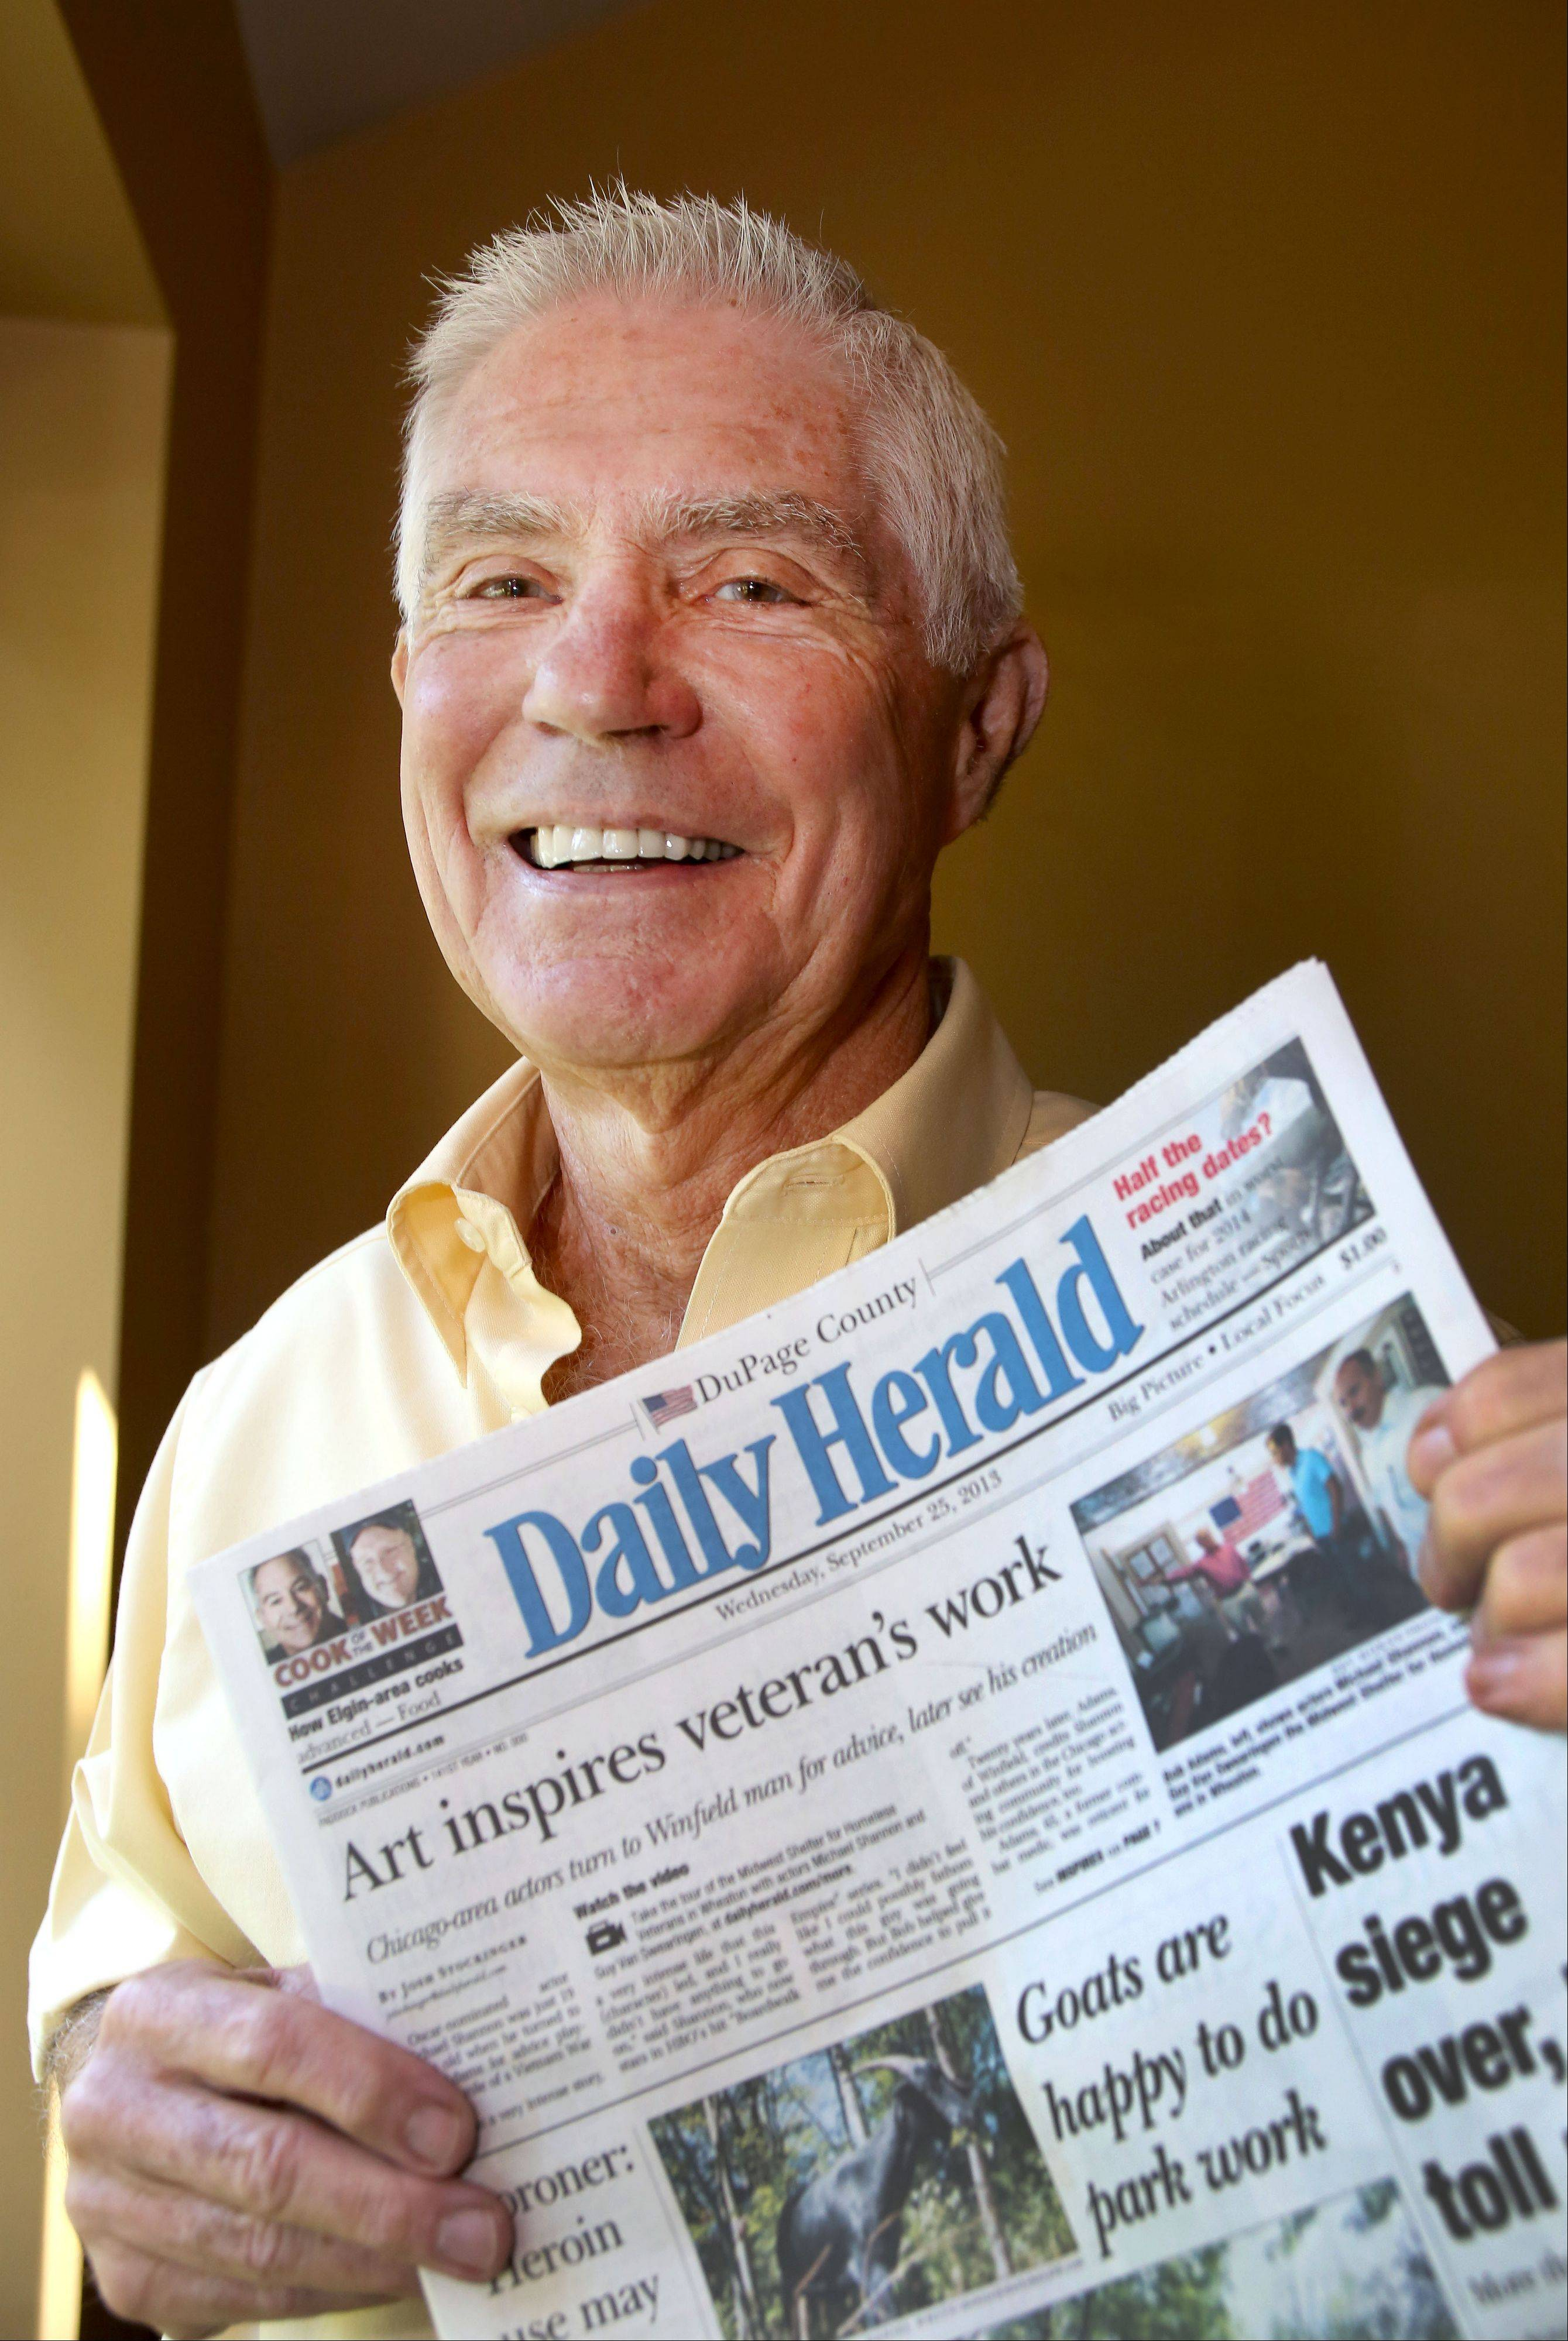 Jerry Meyer of West Chicago says he�s a big fan of daily newspapers.�I like to know what�s going on in the world and around town,� he says.